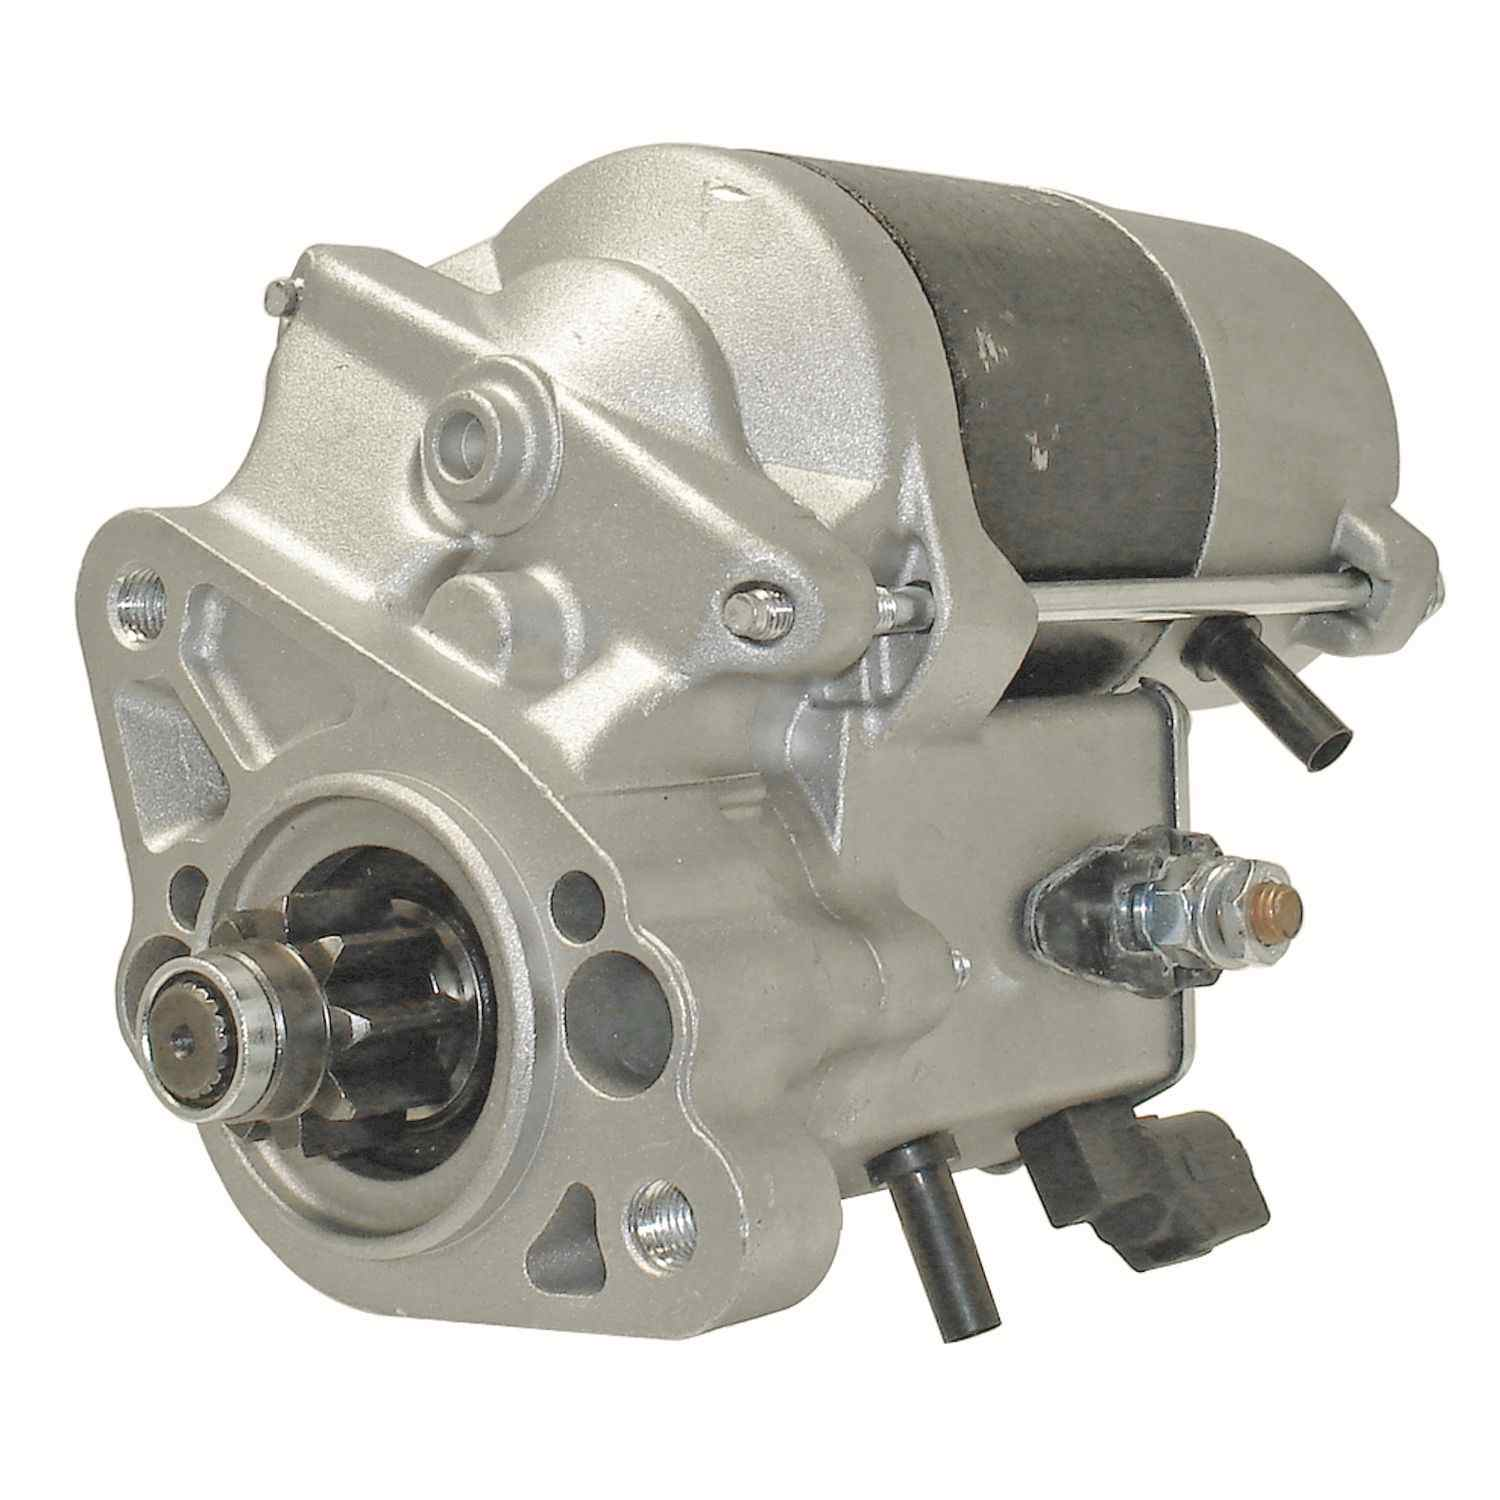 ACDELCO GOLD/PROFESSIONAL - Reman Starter Motor - DCC 336-1641